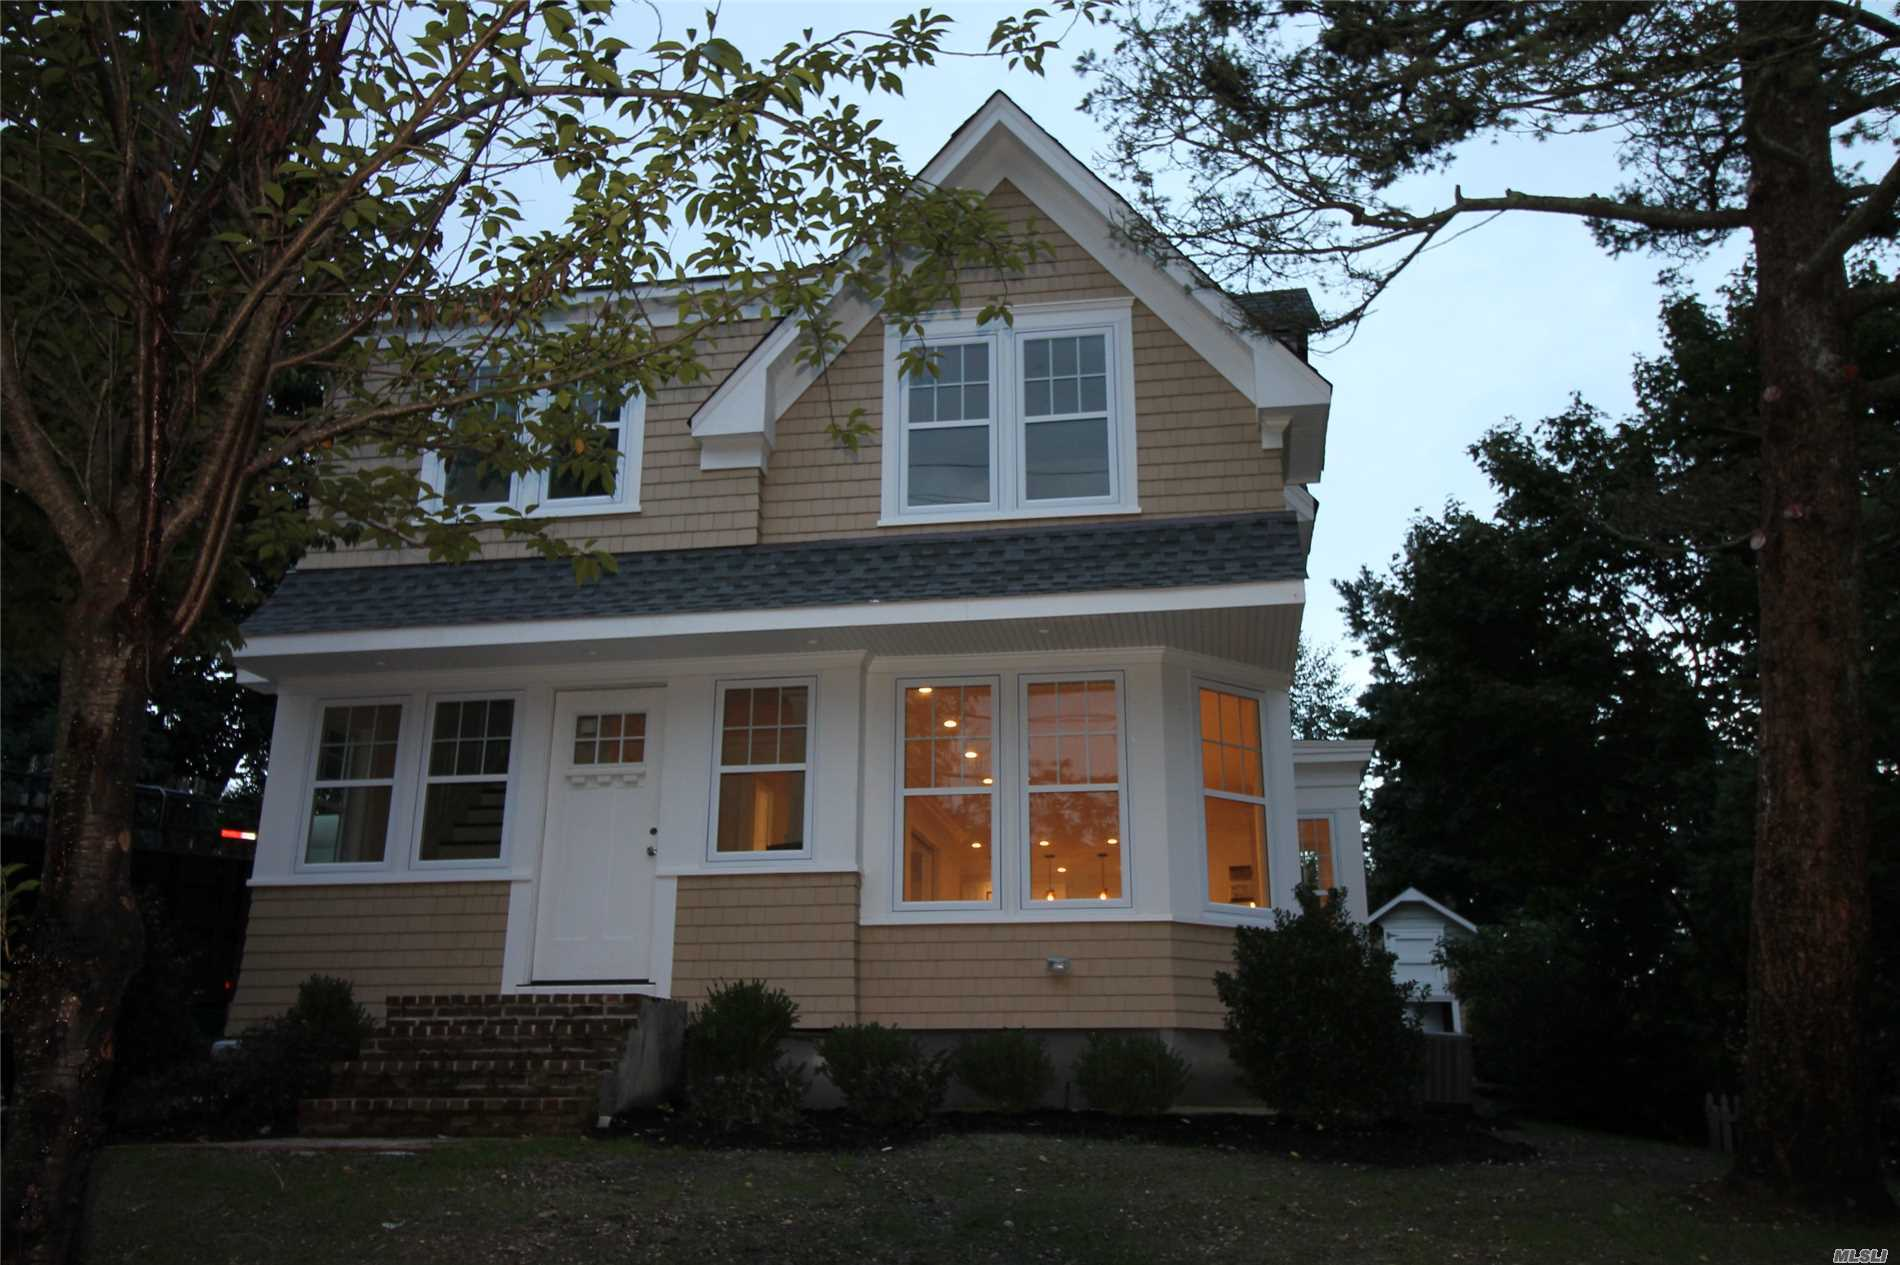 A Village Gem! Must See This Beautiful Newly Renovated 2 Story, 4 Bedroom Home W/ Thermador Stainless Steel Appliances, Granite Countertops, Eik With Center Island. Marble Bathrooms (4th Bedroom Can Be Den Or Study).  1 Car Detached Garage, 1 Detached Shed. Close To Village, Lirr And Shopping. *Please Note That The Home Is Still In The Final Stages Of Renovations. More Pictures To Come. Copy Of Recent Taxes Are Attached.